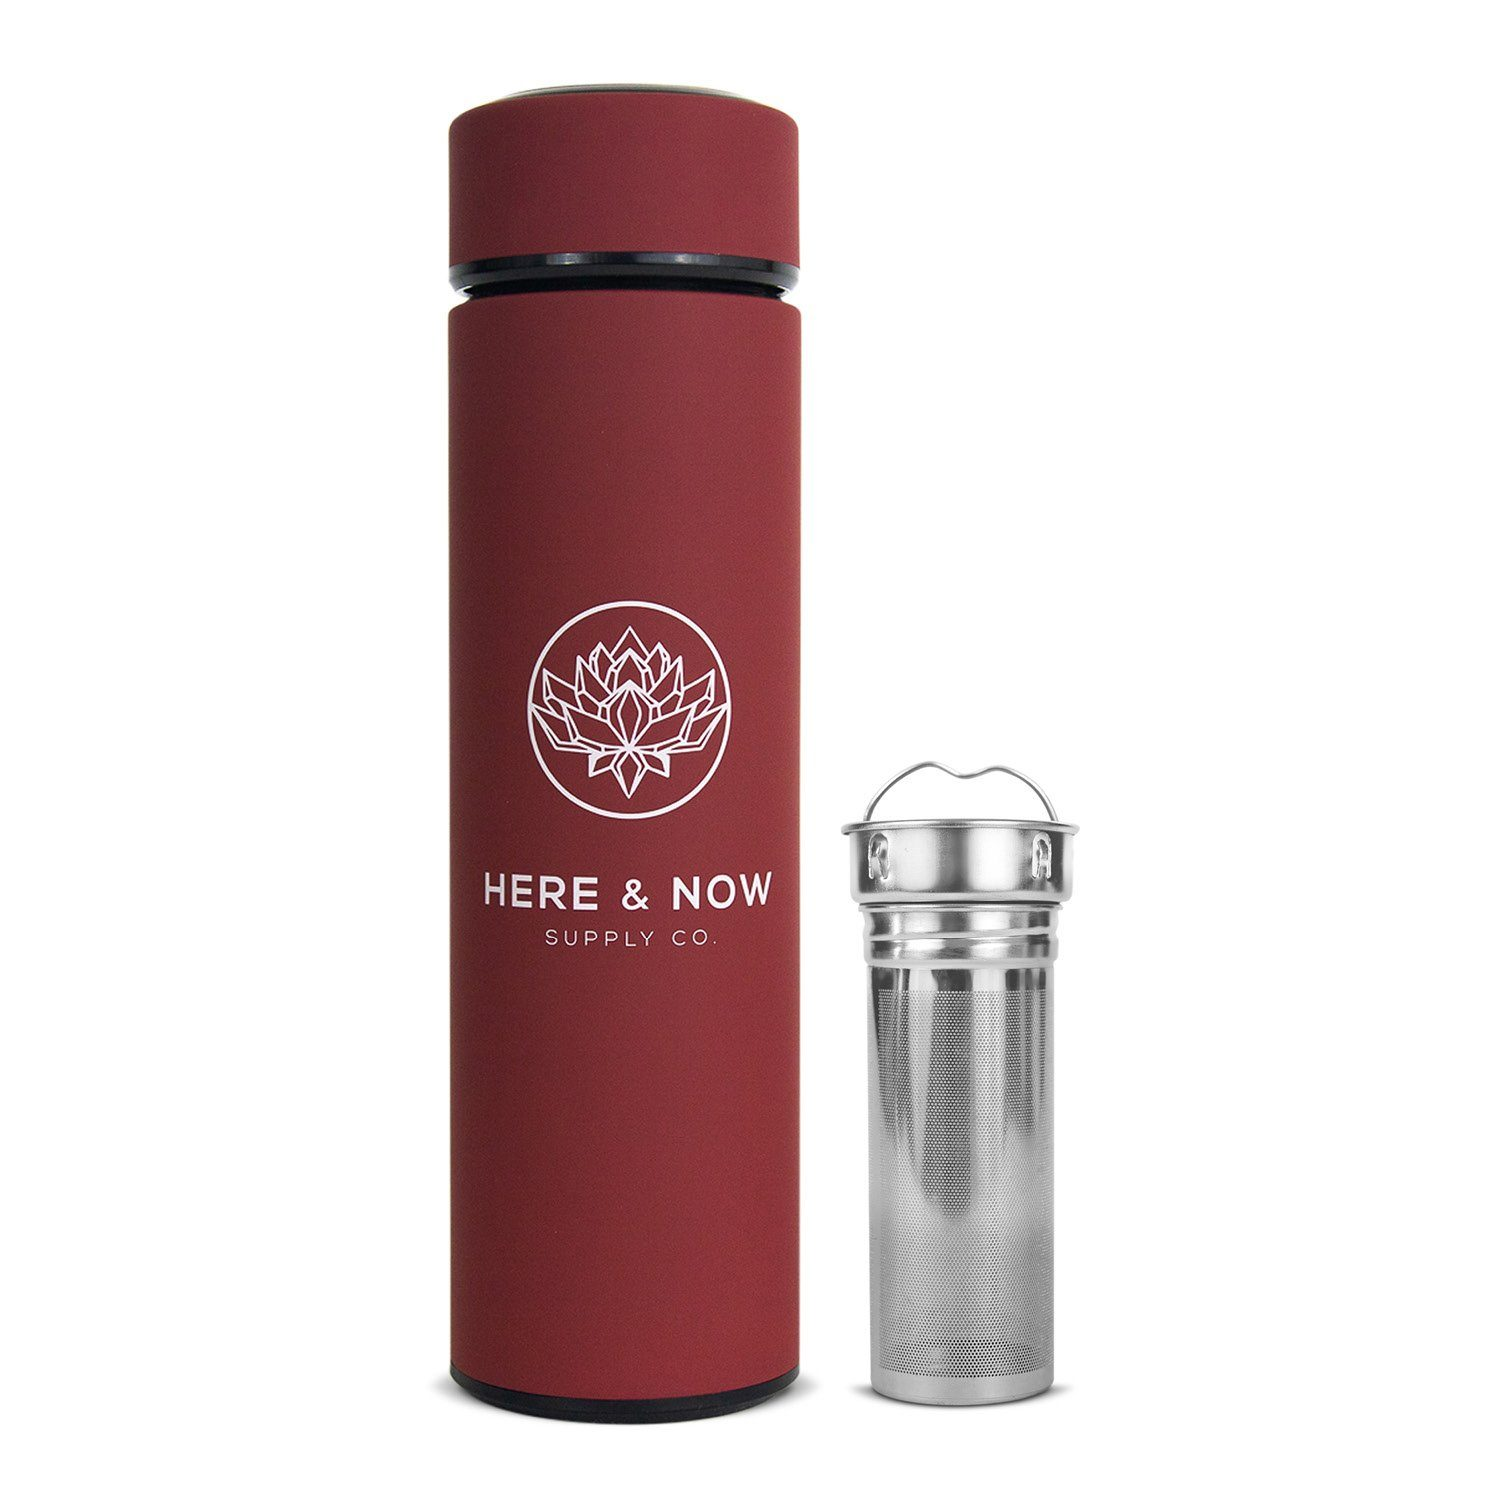 Insight - 16 oz Infuser Bottle Infuser Bottle Here & Now Supply Co. Sacred Red #color_sacred-red